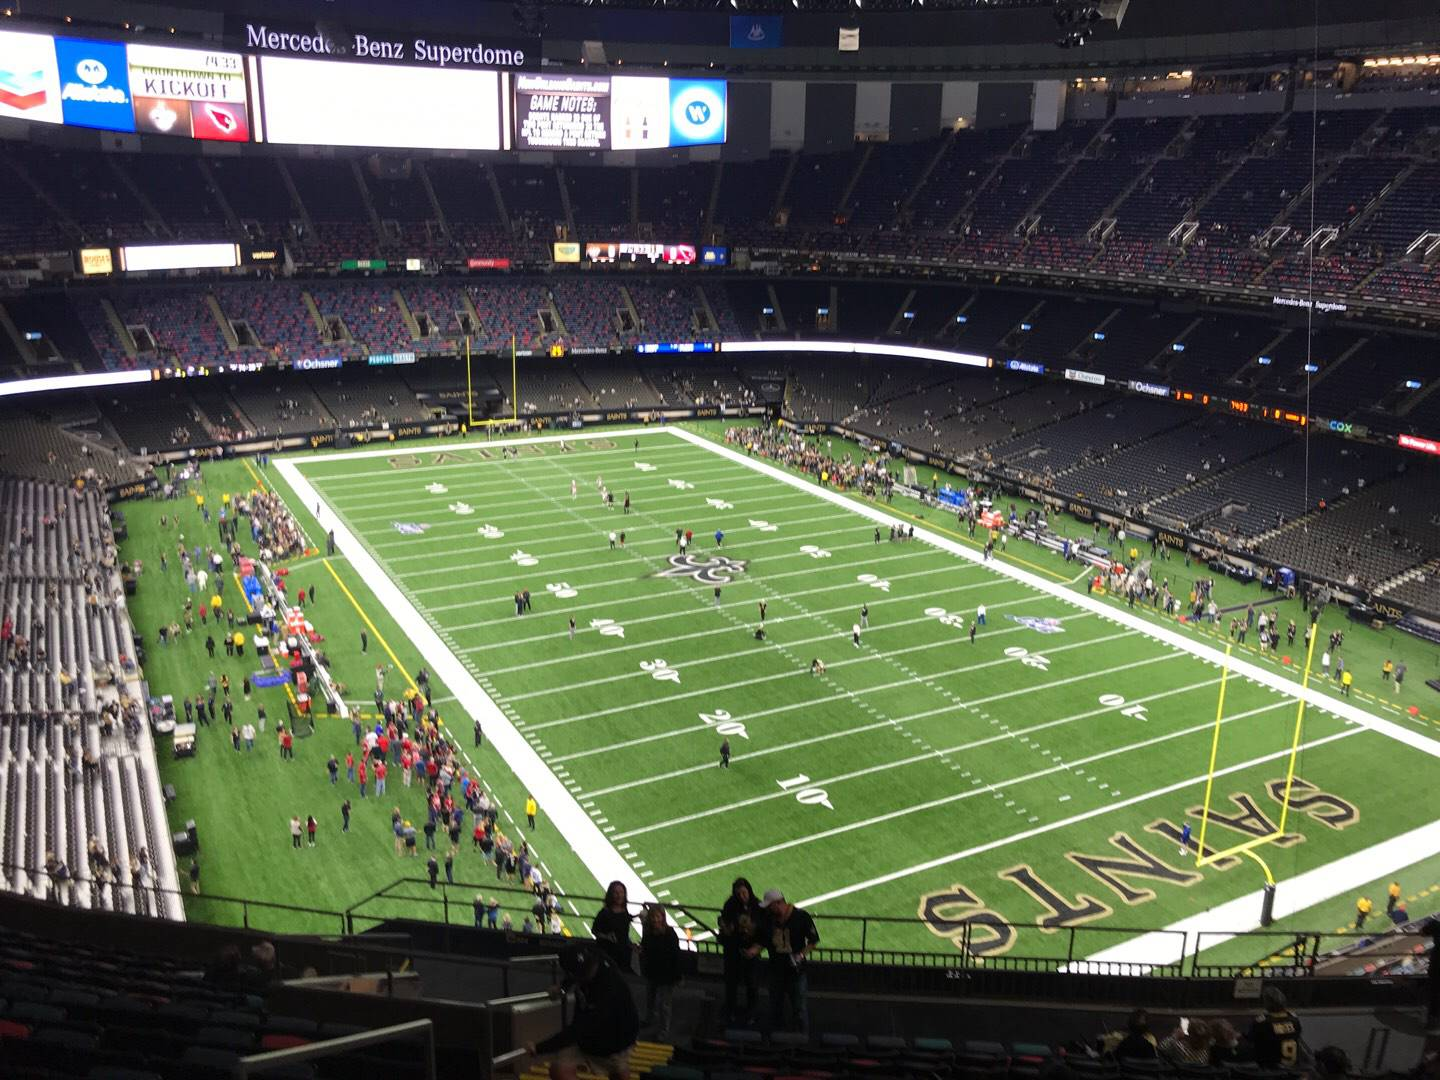 Mercedes-Benz Superdome Section 605 Row 16 Seat 22